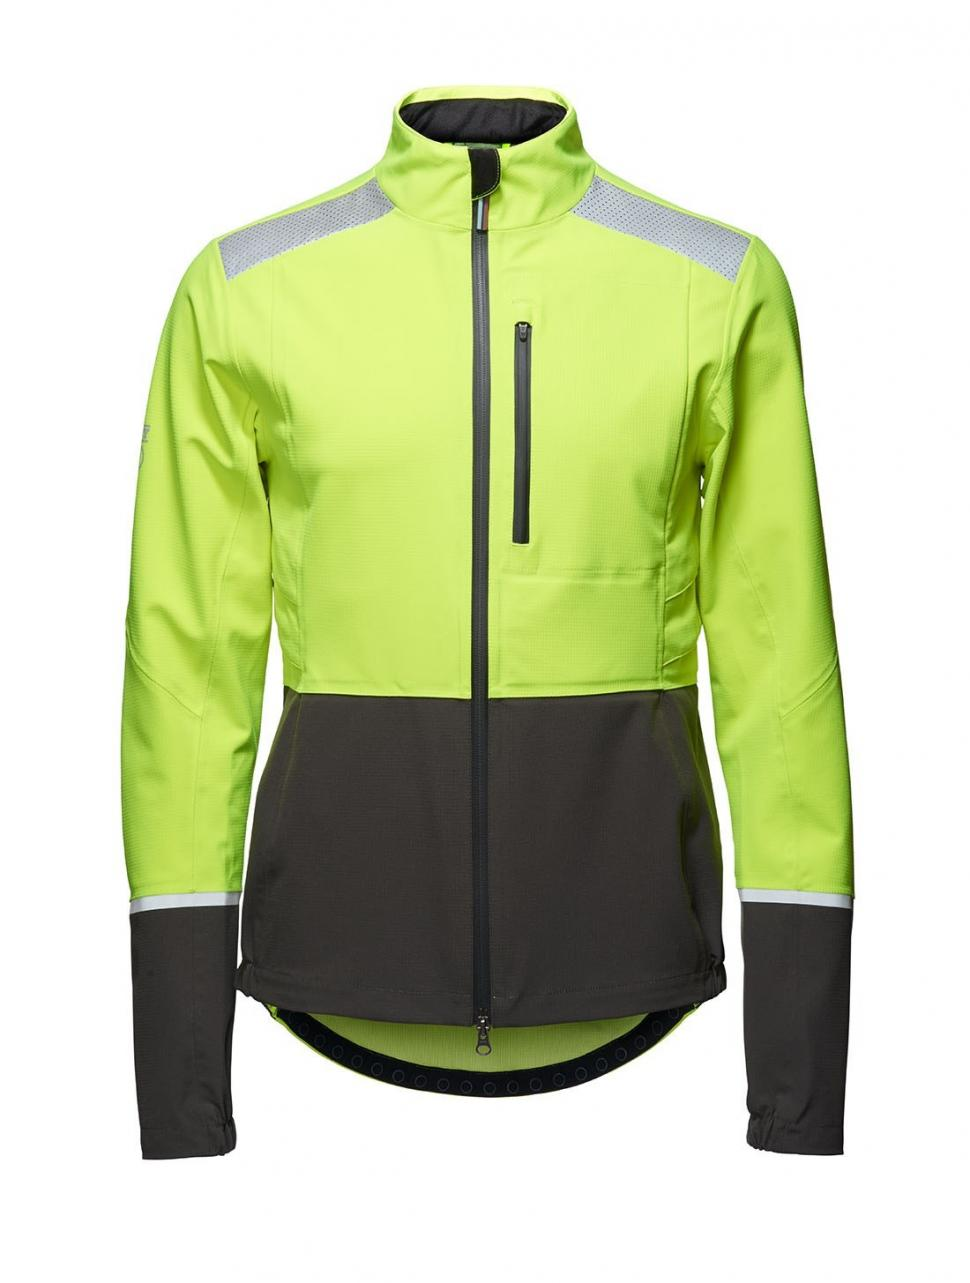 Beacon Waterproof Jacket 3.jpg